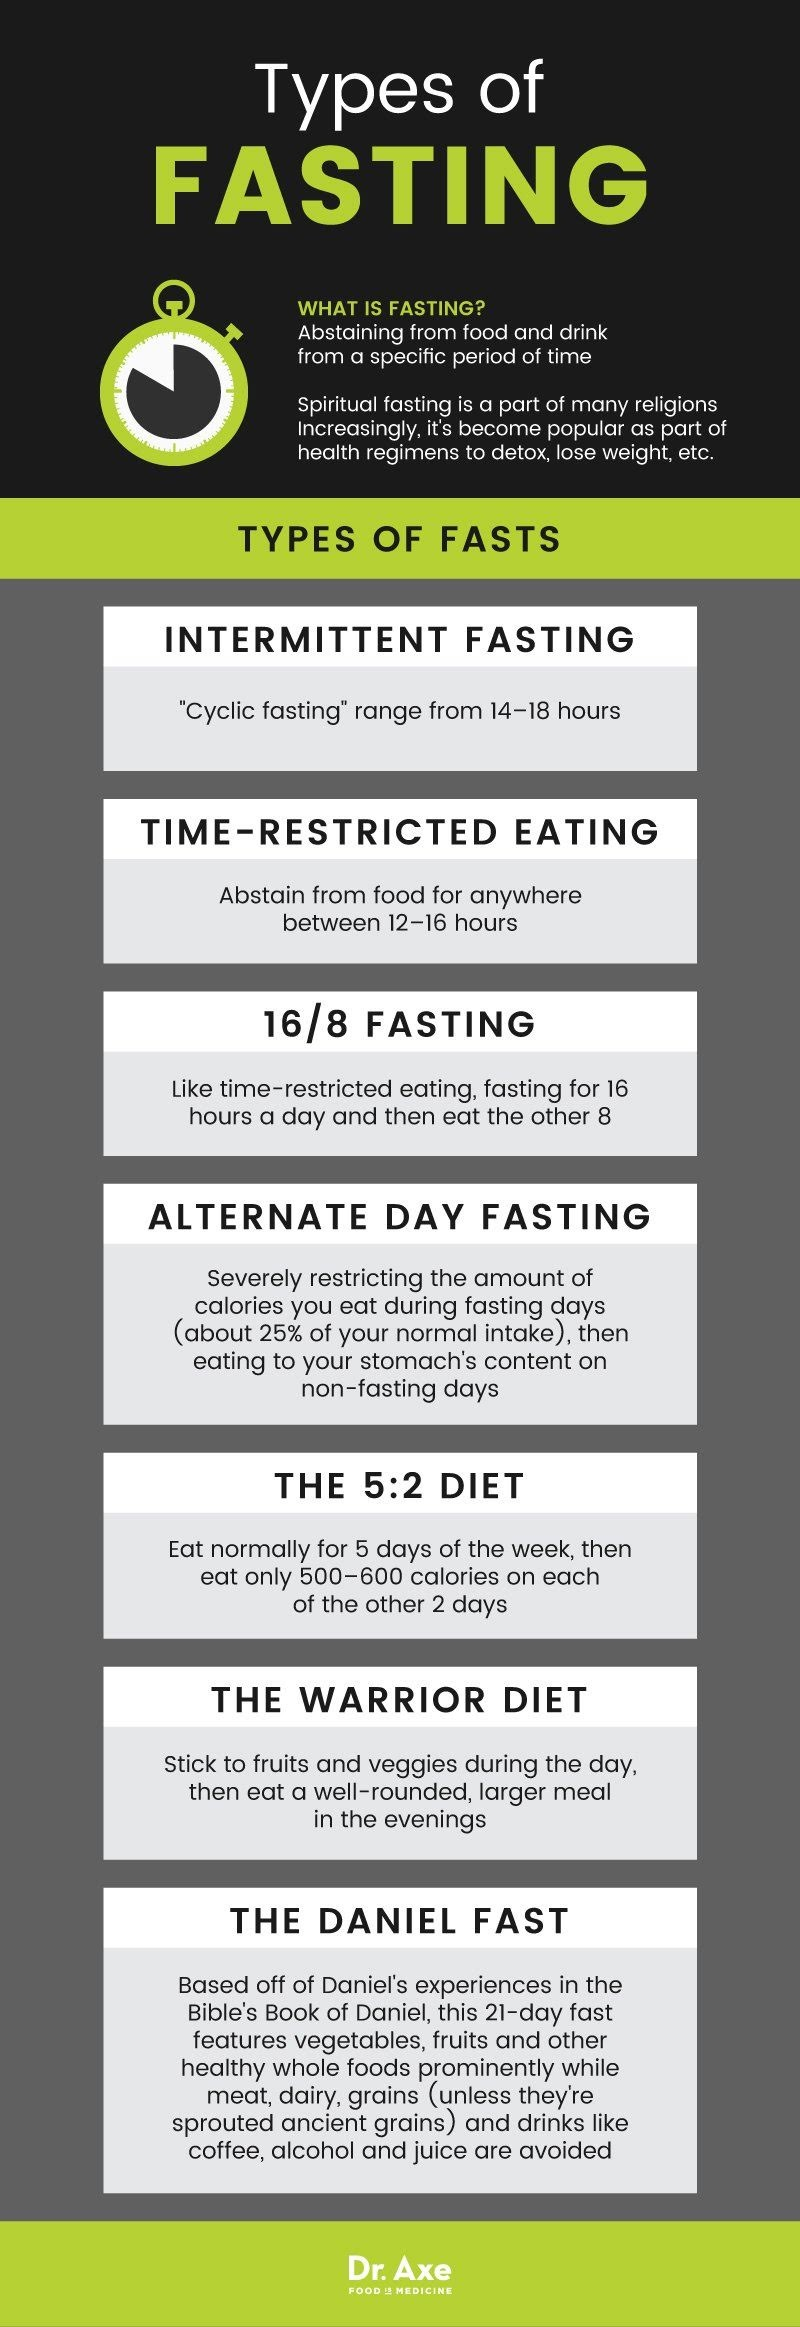 Types of Fasting #Infographic